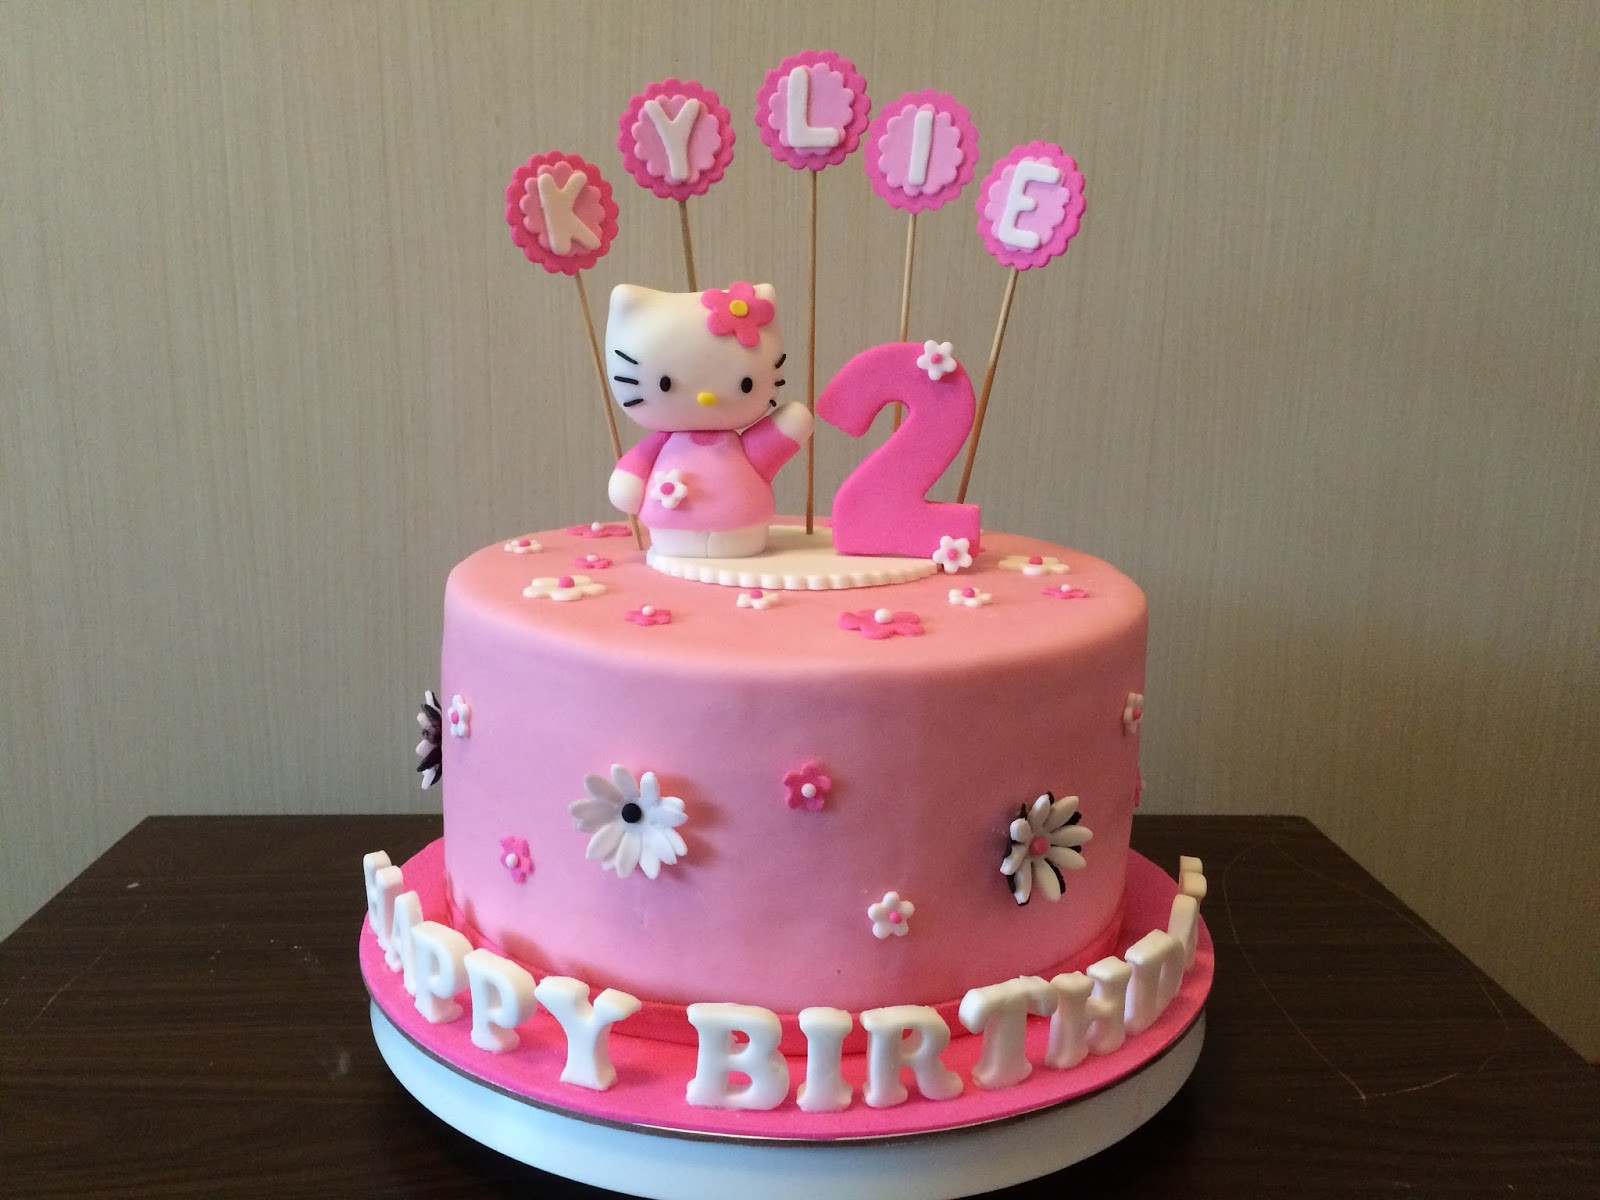 Best ideas about 2nd Birthday Cake . Save or Pin Send 2ND Birthday Cake to Vizag Now.